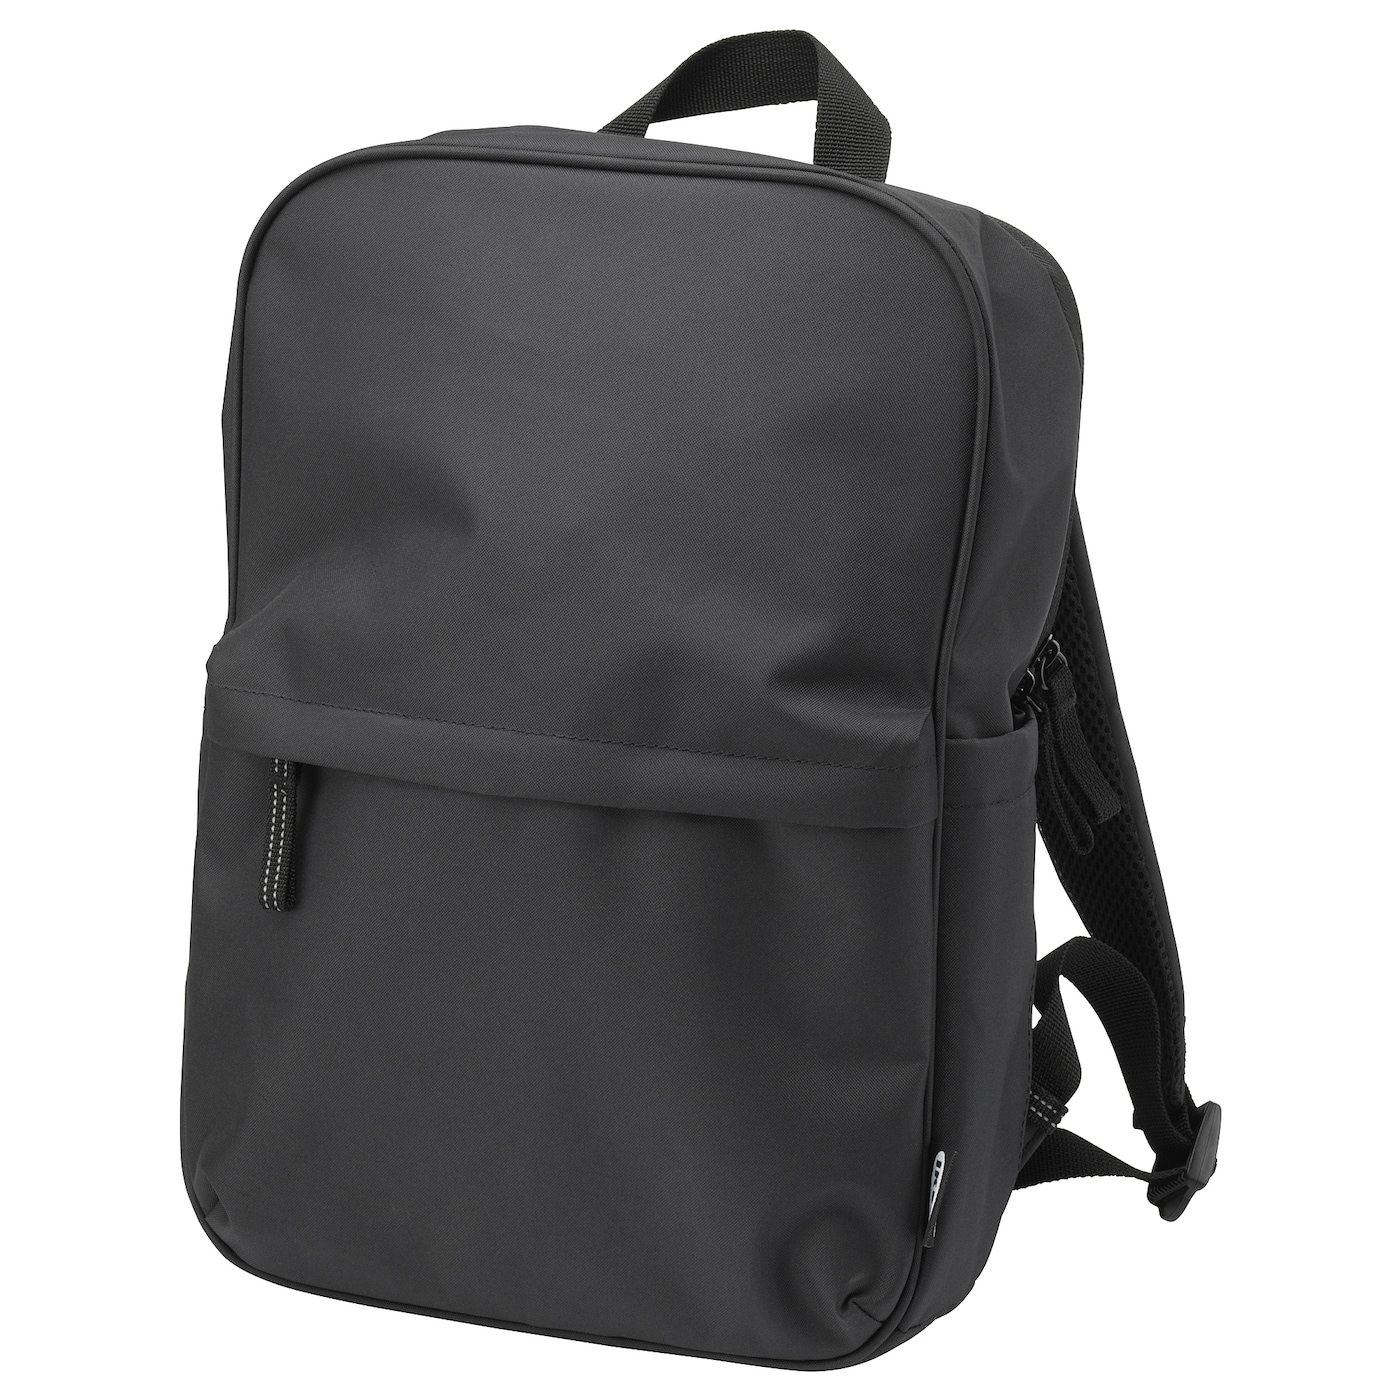 IKEA STARTTID backpack Two side compartments perfect for bottles or umbrellas.